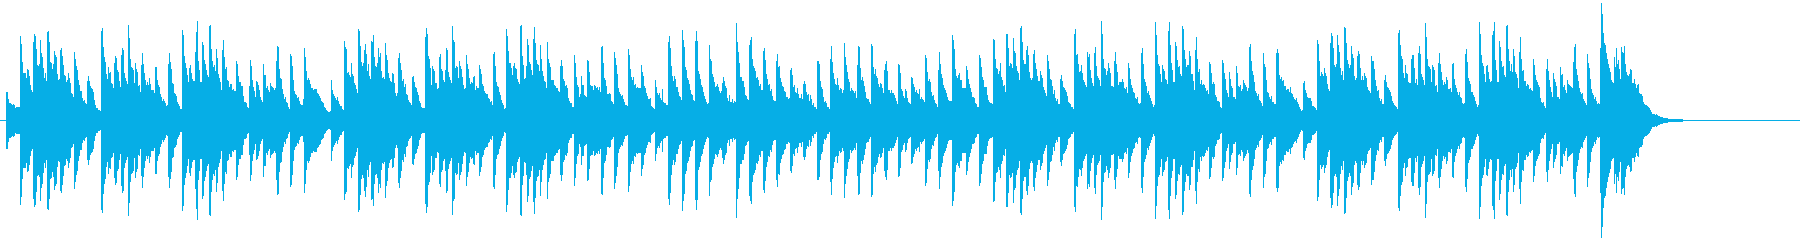 Music box style of famous Christmas song by CM's reproduced waveform